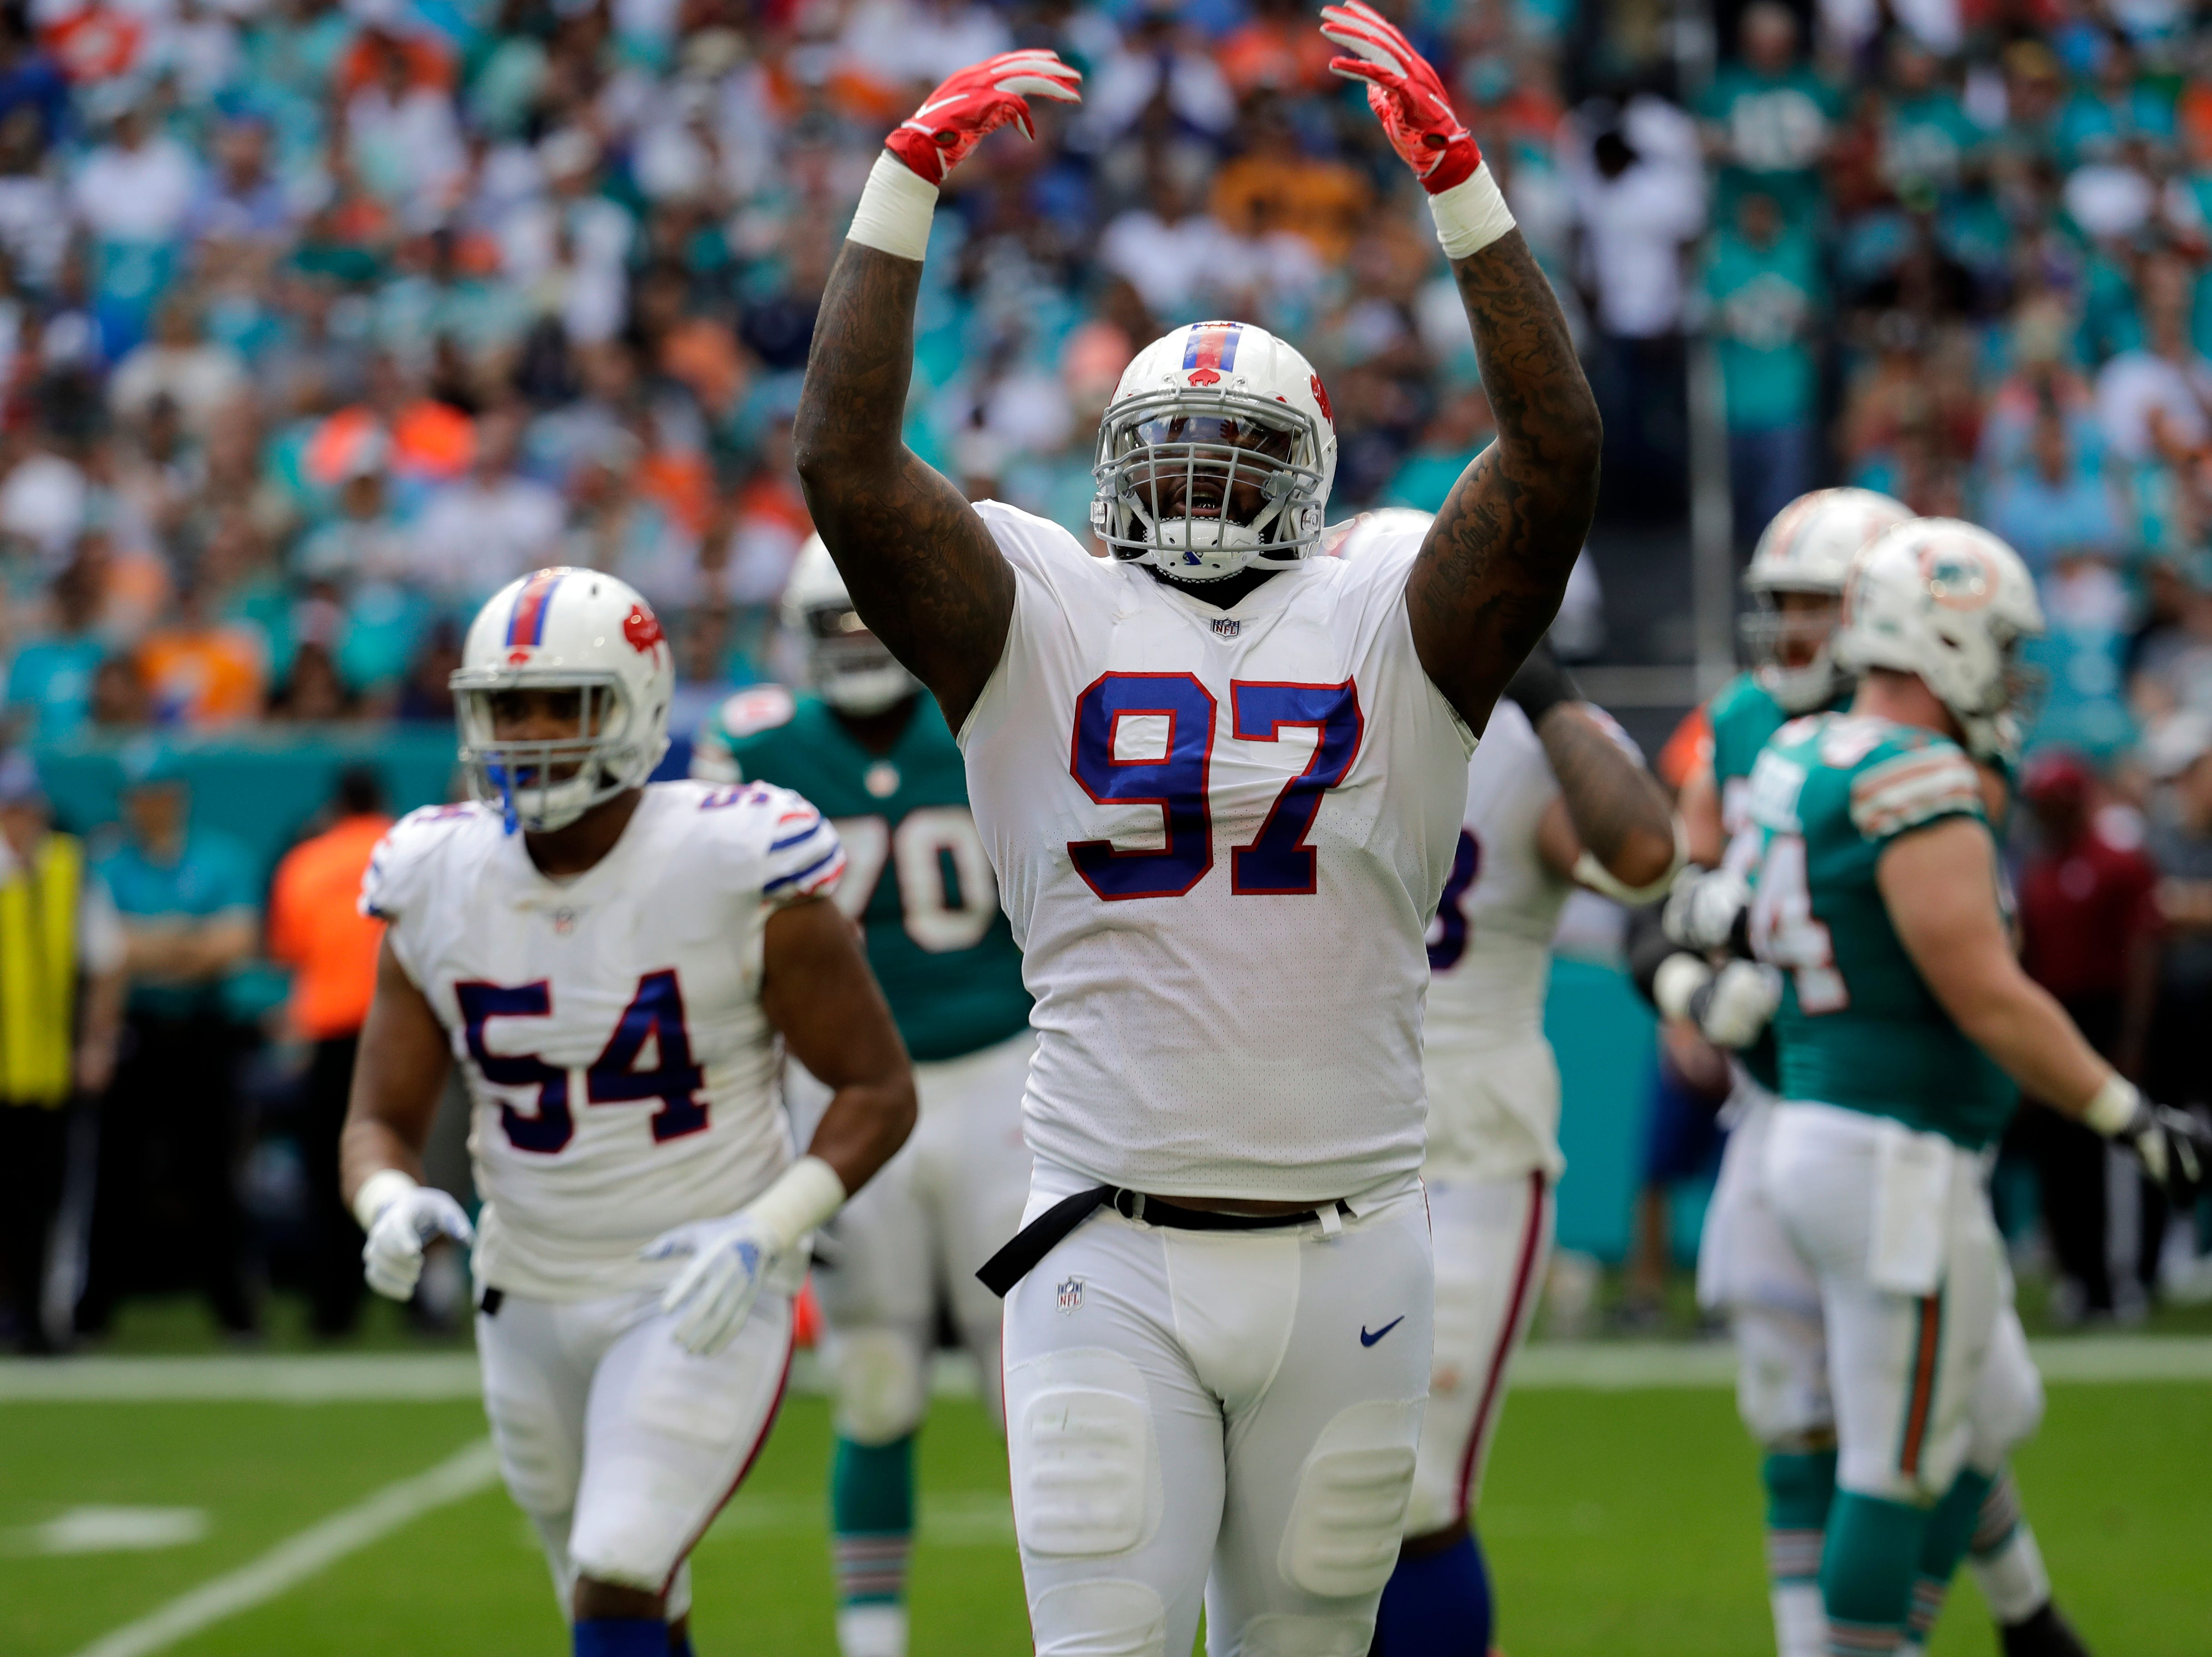 Buffalo Bills defensive tackle Jordan Phillips (97) gestures, during the first half of an NFL football game against the Miami Dolphins, Sunday, Dec. 2, 2018, in Miami Gardens, Fla. (AP Photo/Lynne Sladky)